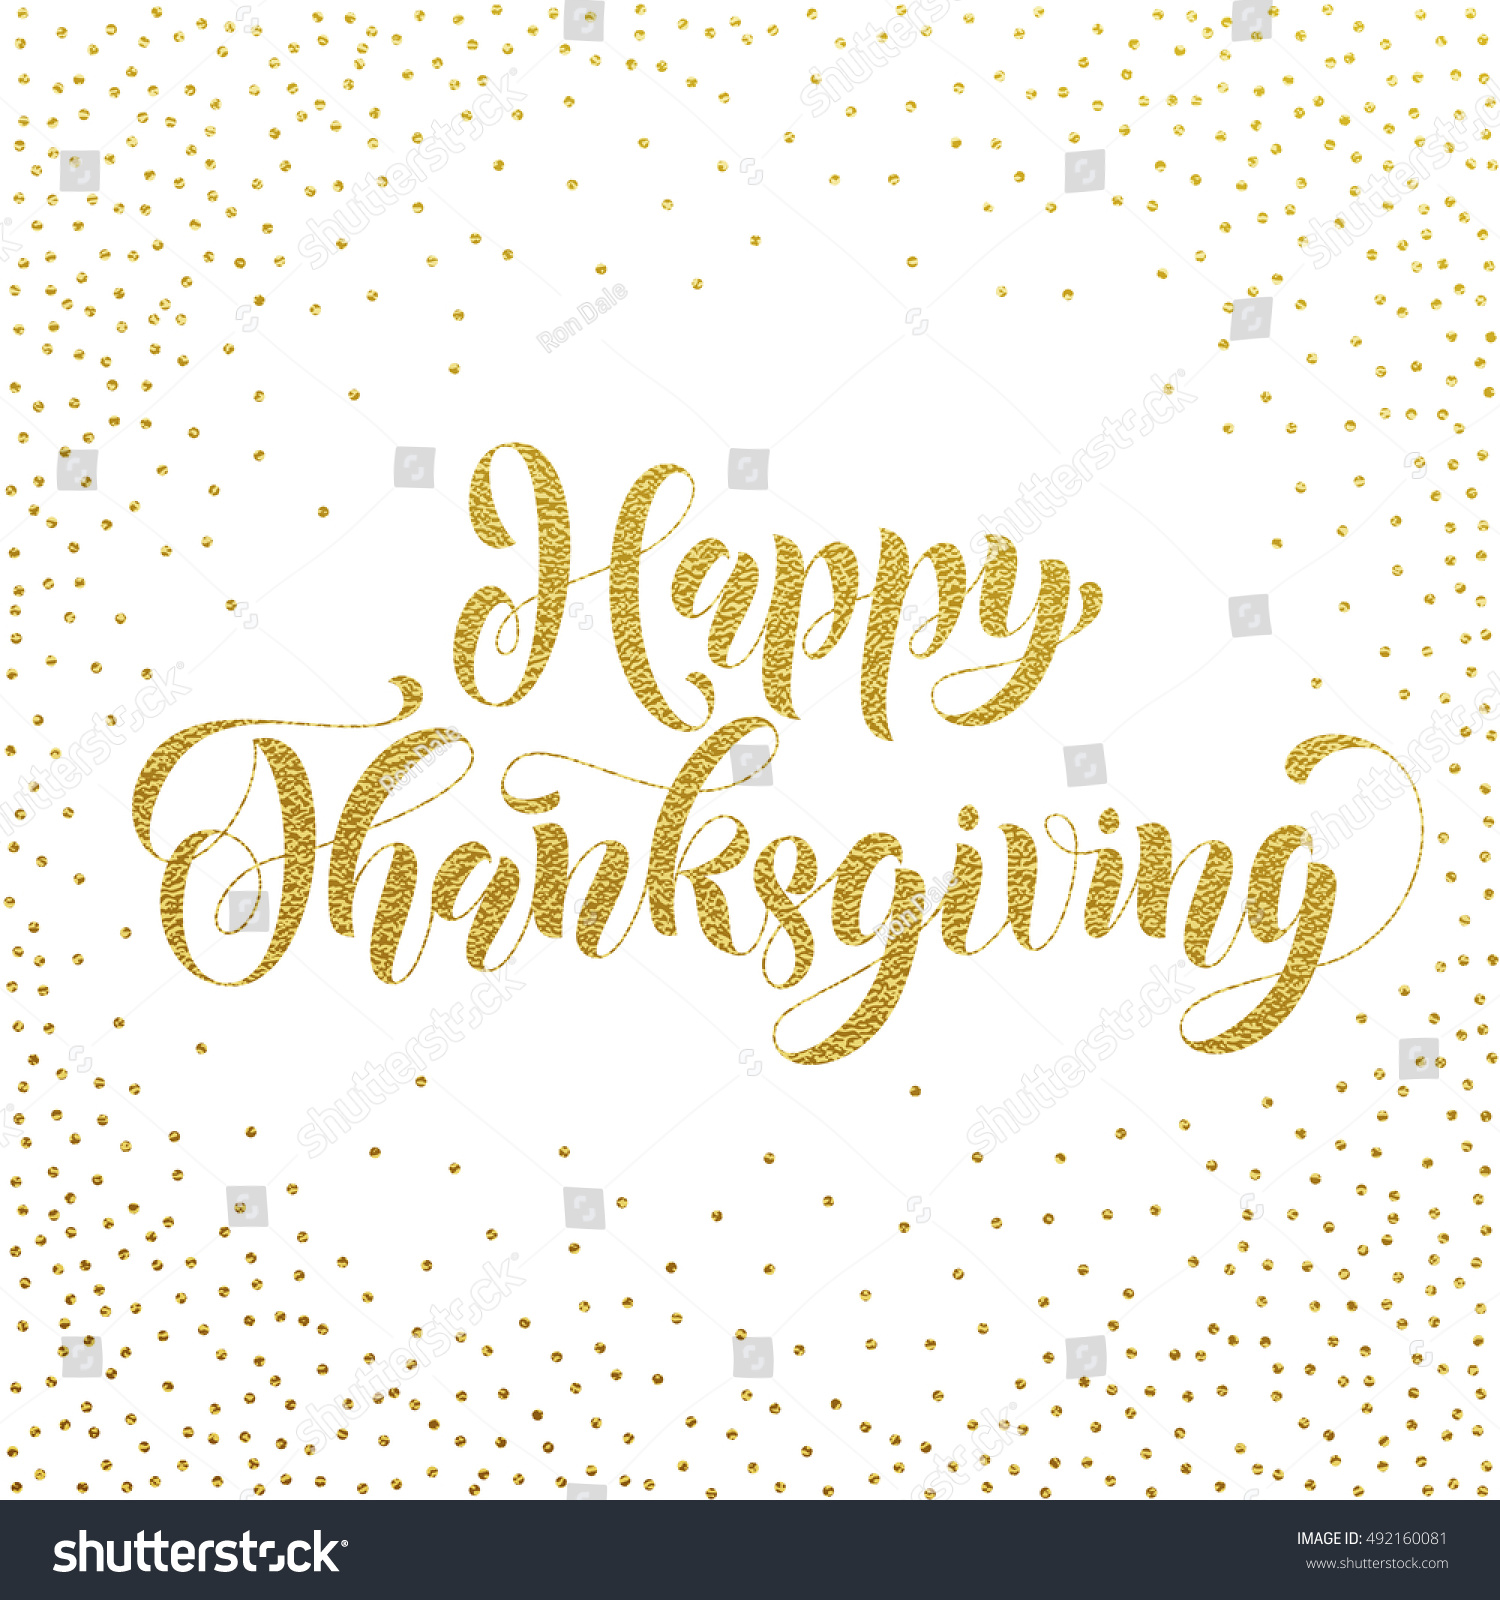 Happy Thanksgiving Greetings Holiday Card Vector Stock Vector